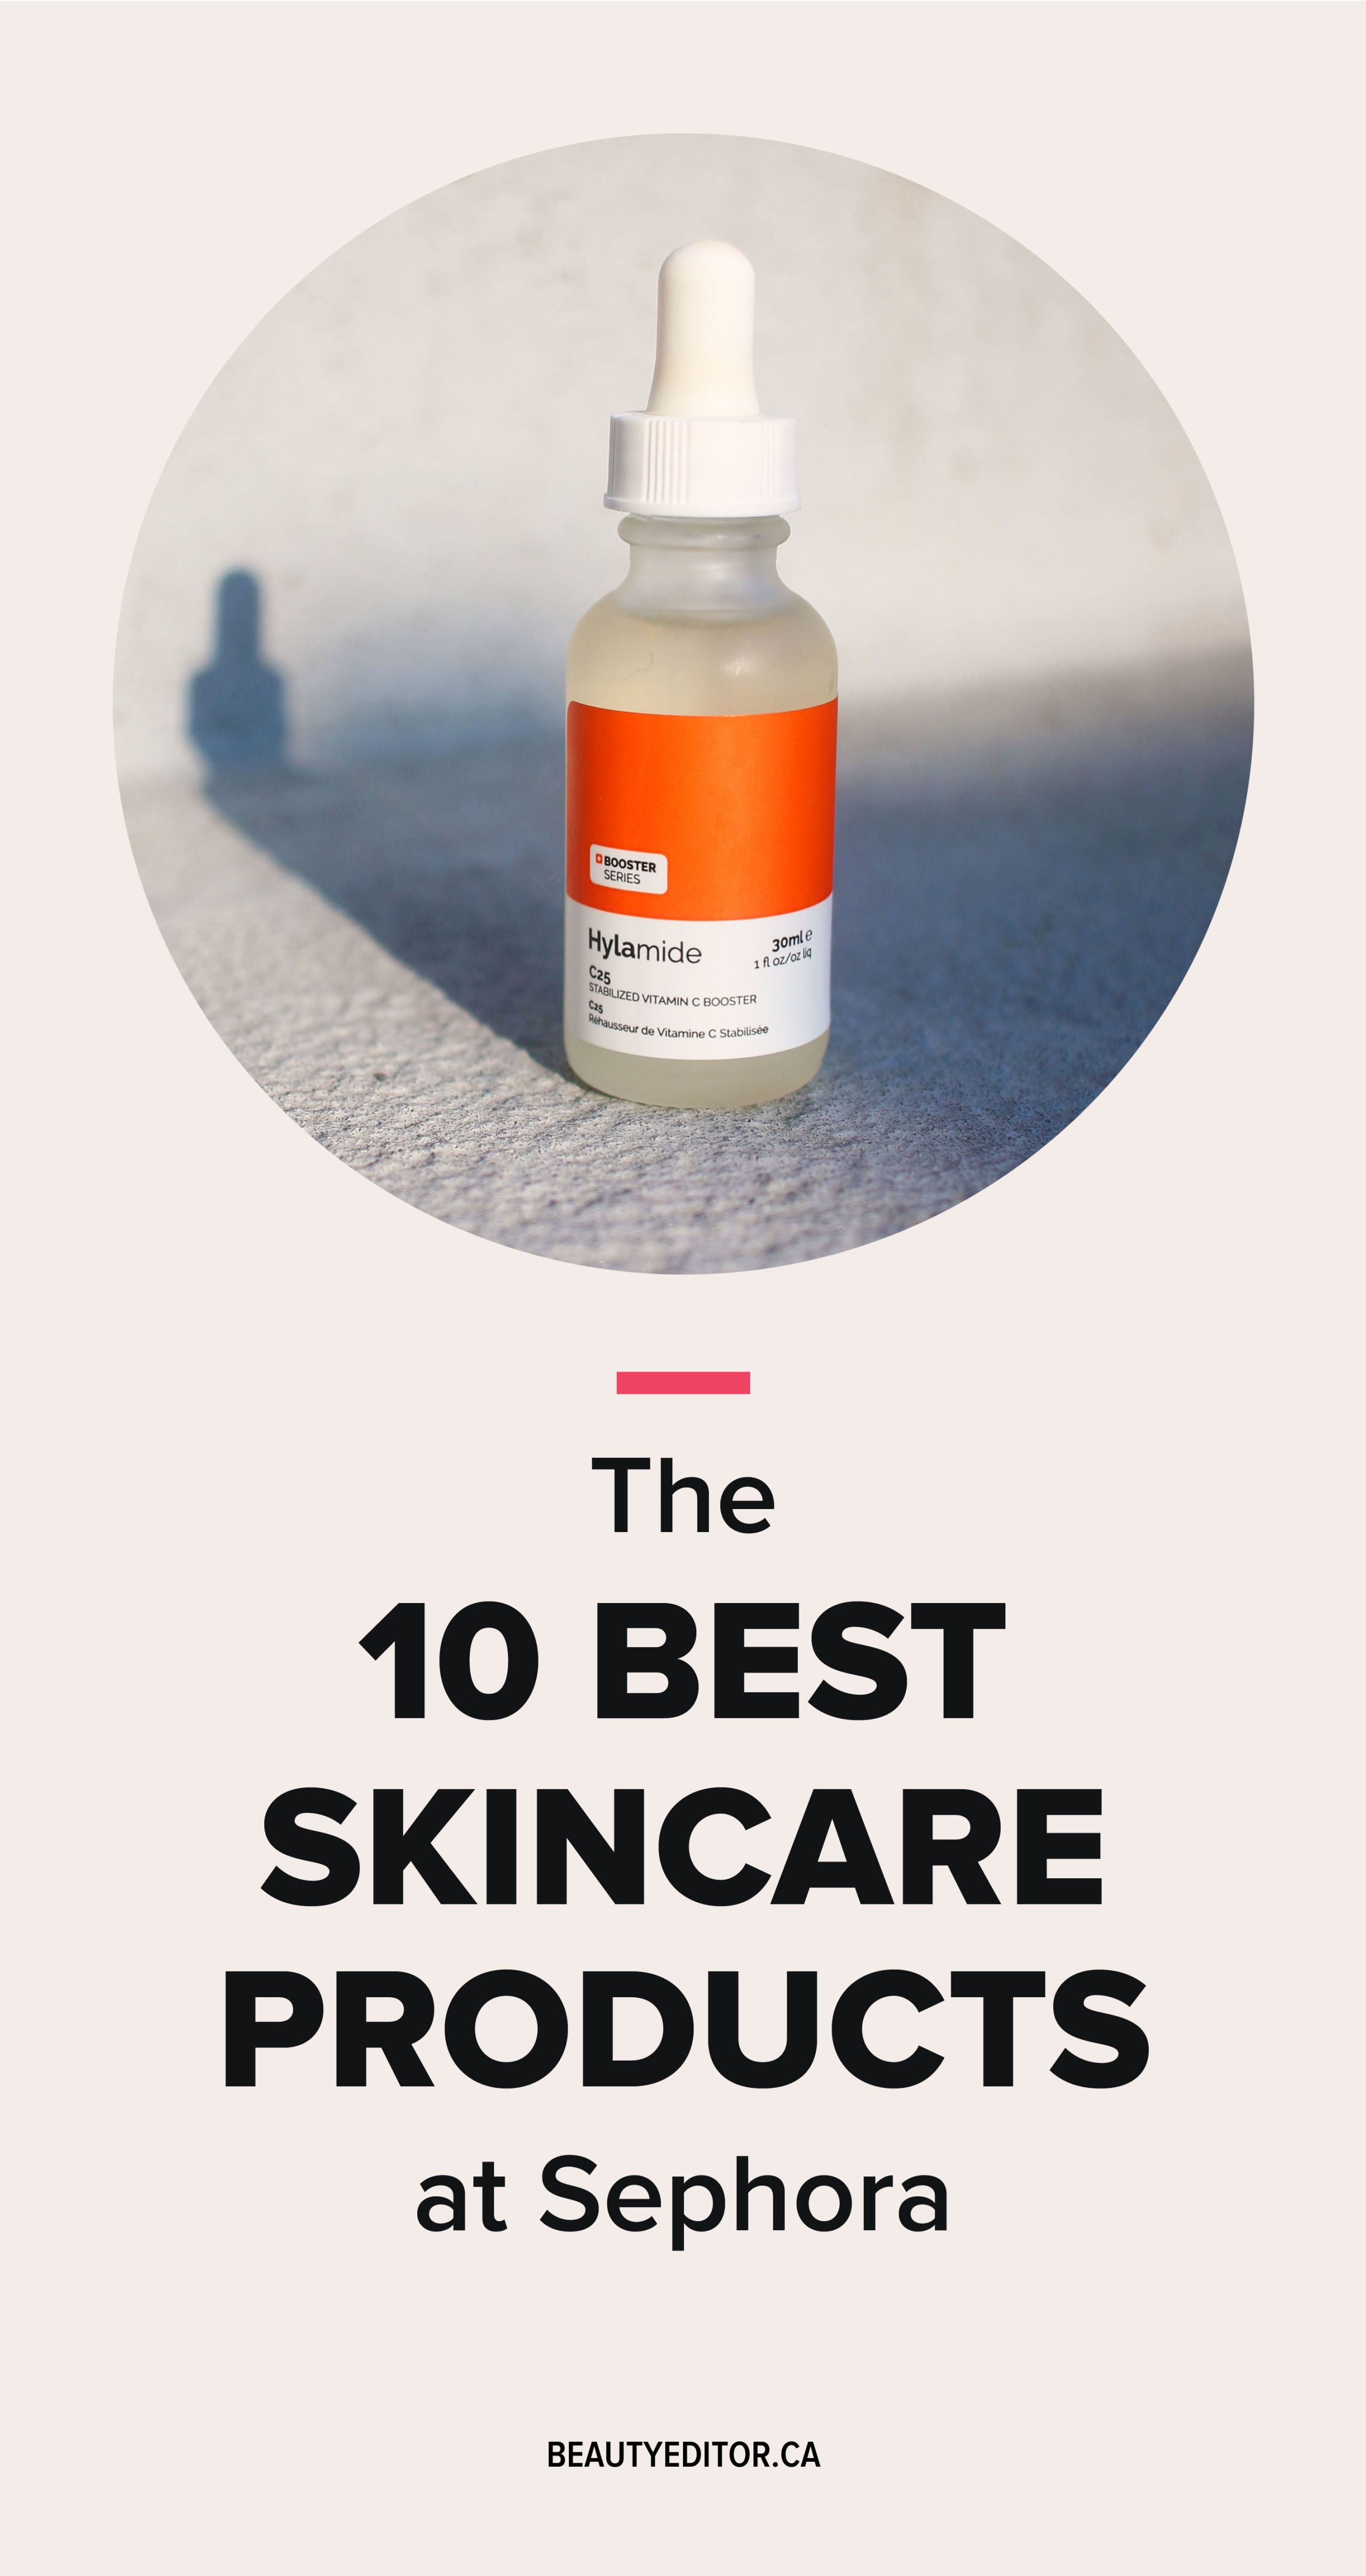 Editor S Picks The 10 Best Skincare Products At Sephora Right Now From Serum To Sunscreen Best Skincare Products Sephora Skin Care Skin Care